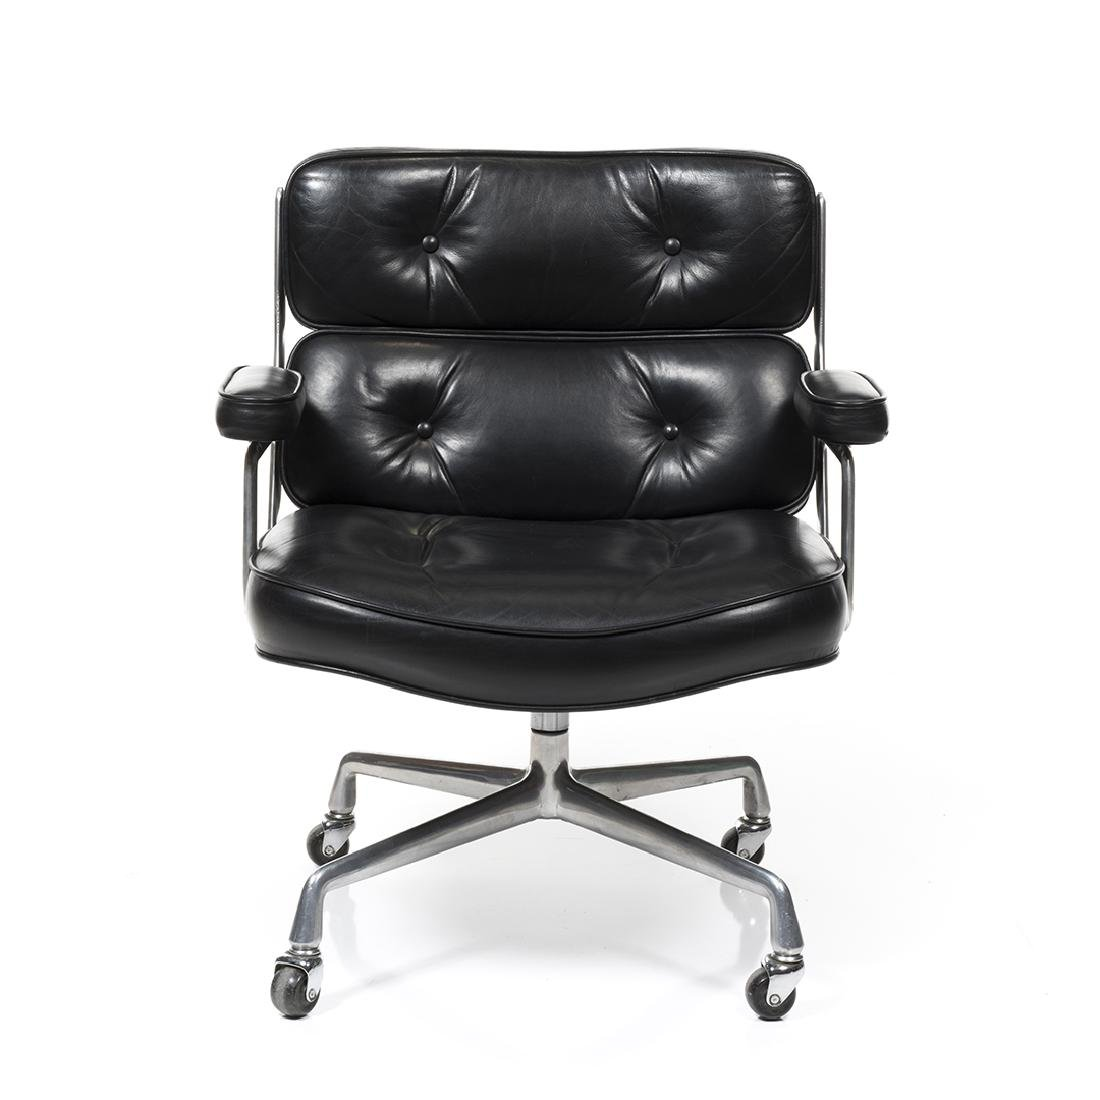 Charles Eames Time-Life Lobby Chair - 2